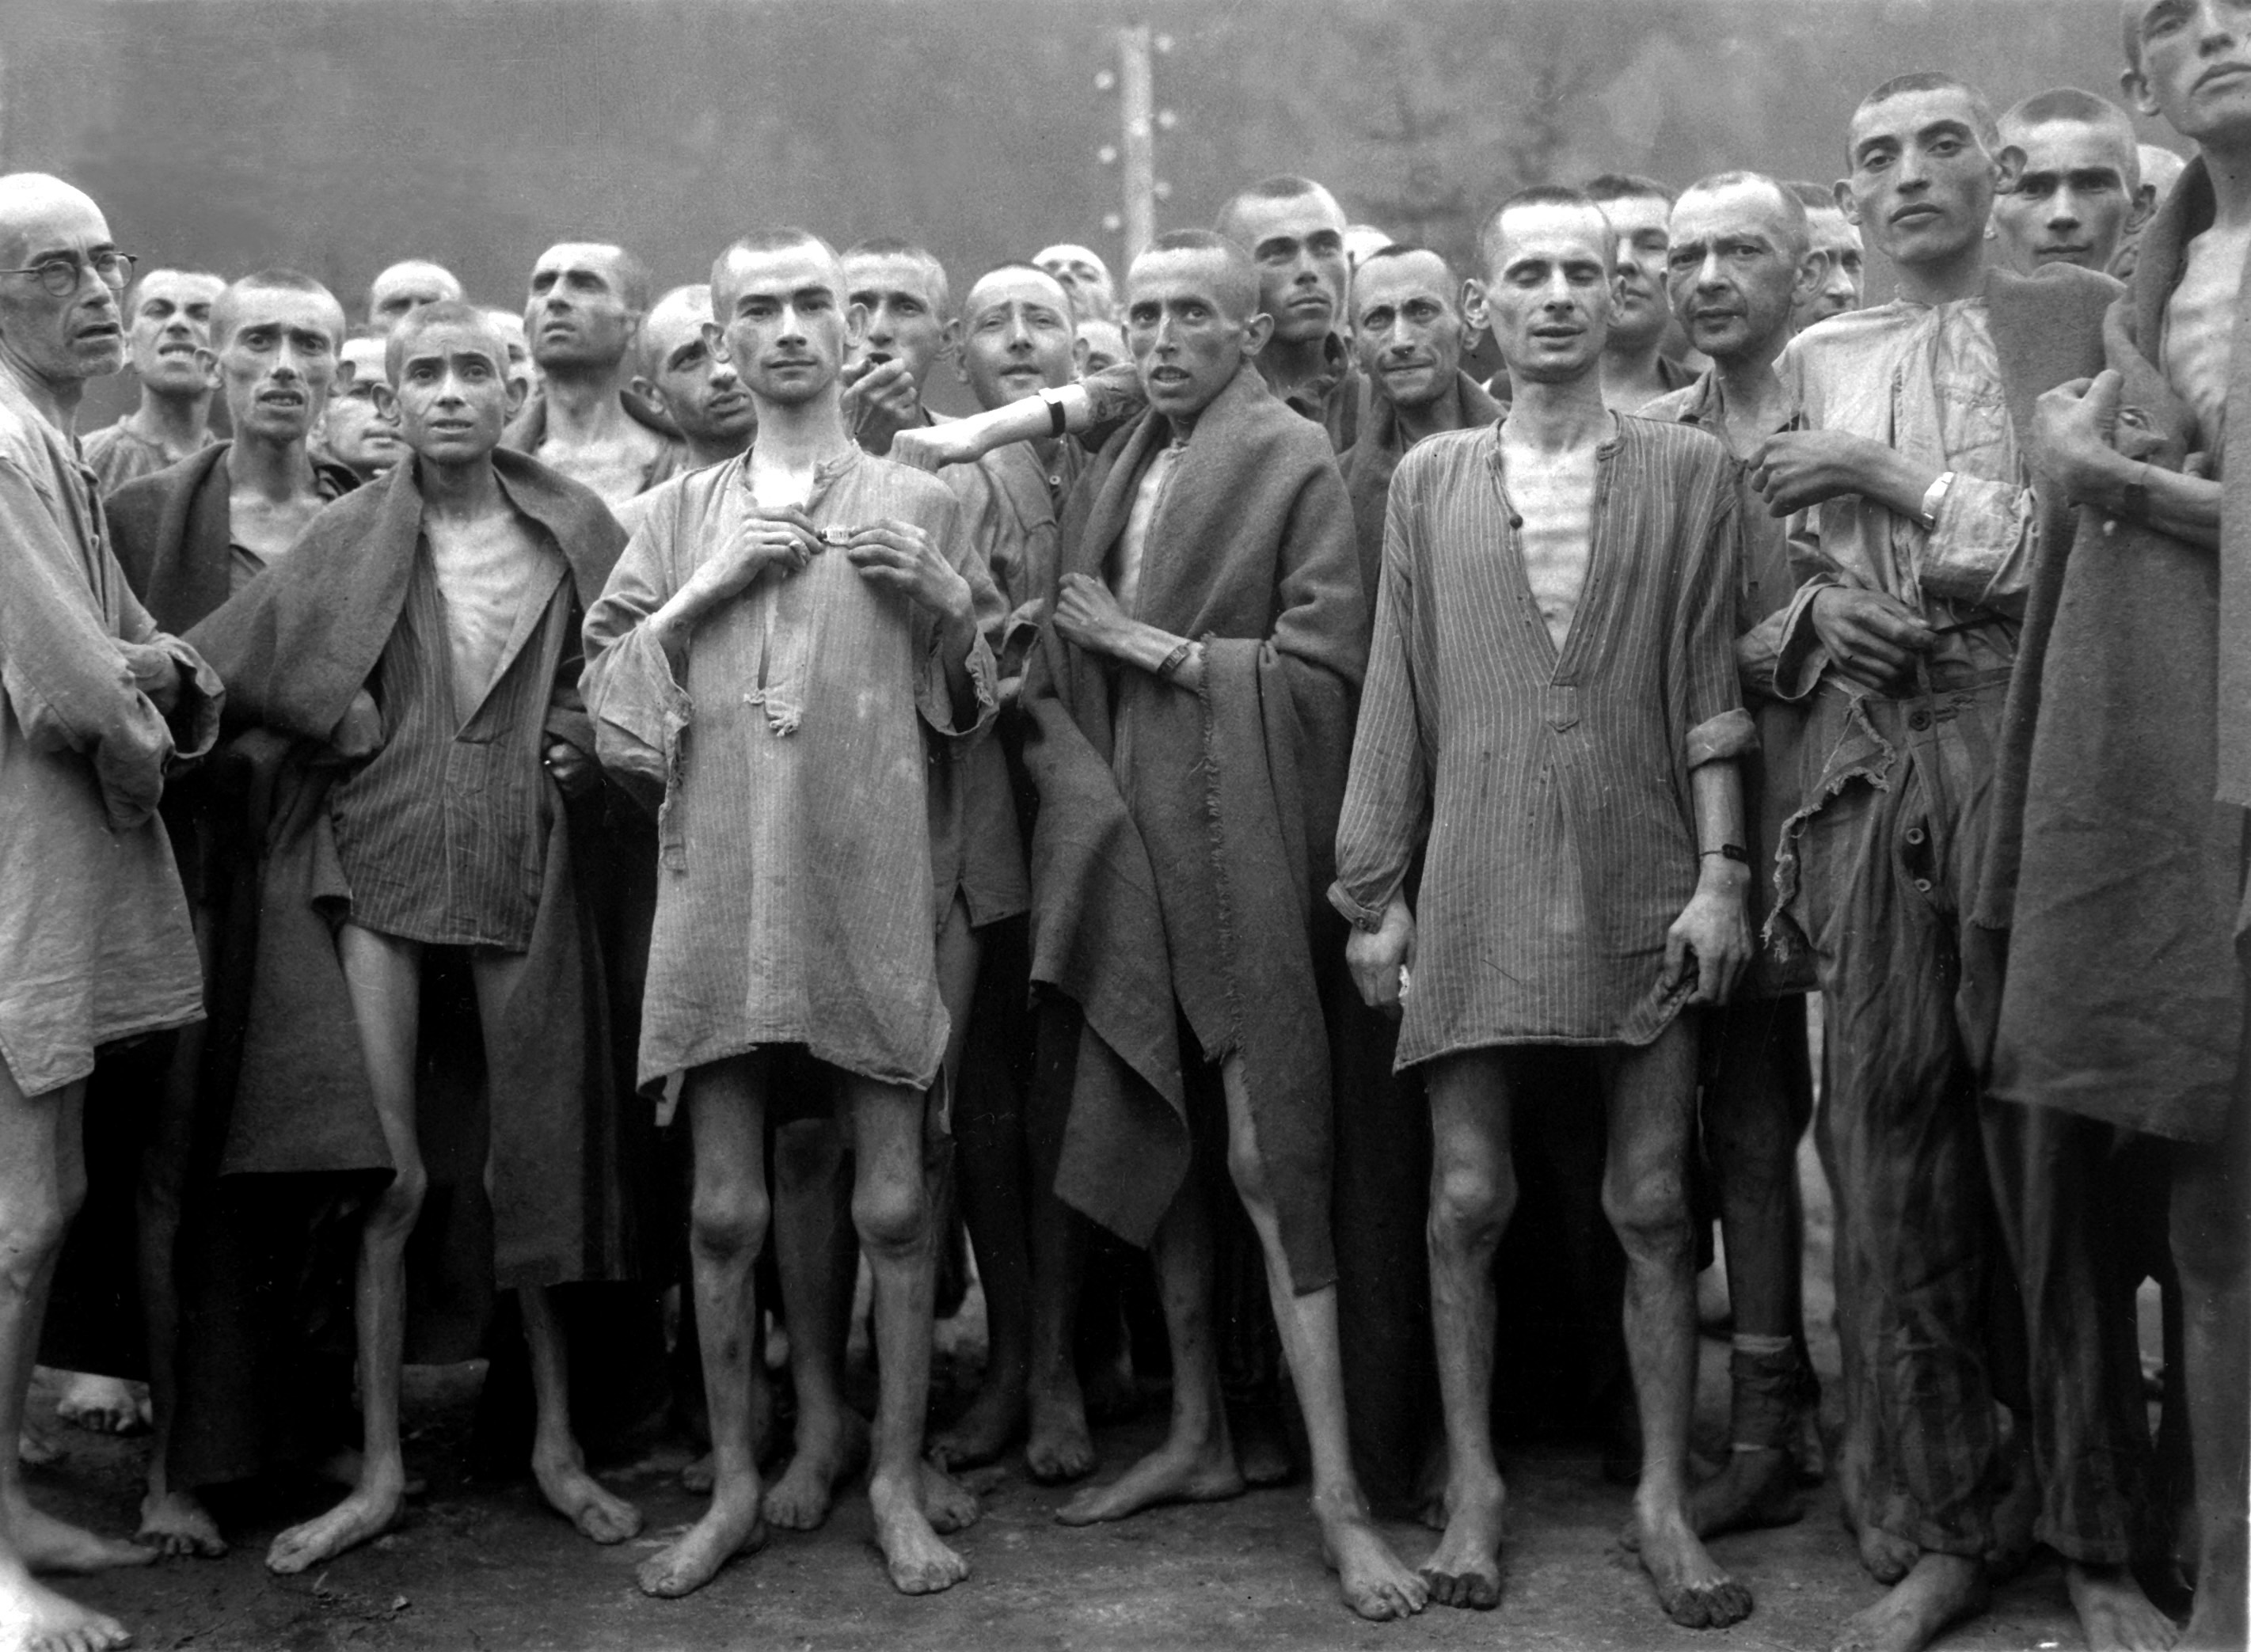 Starved prisoners in Mauthaund